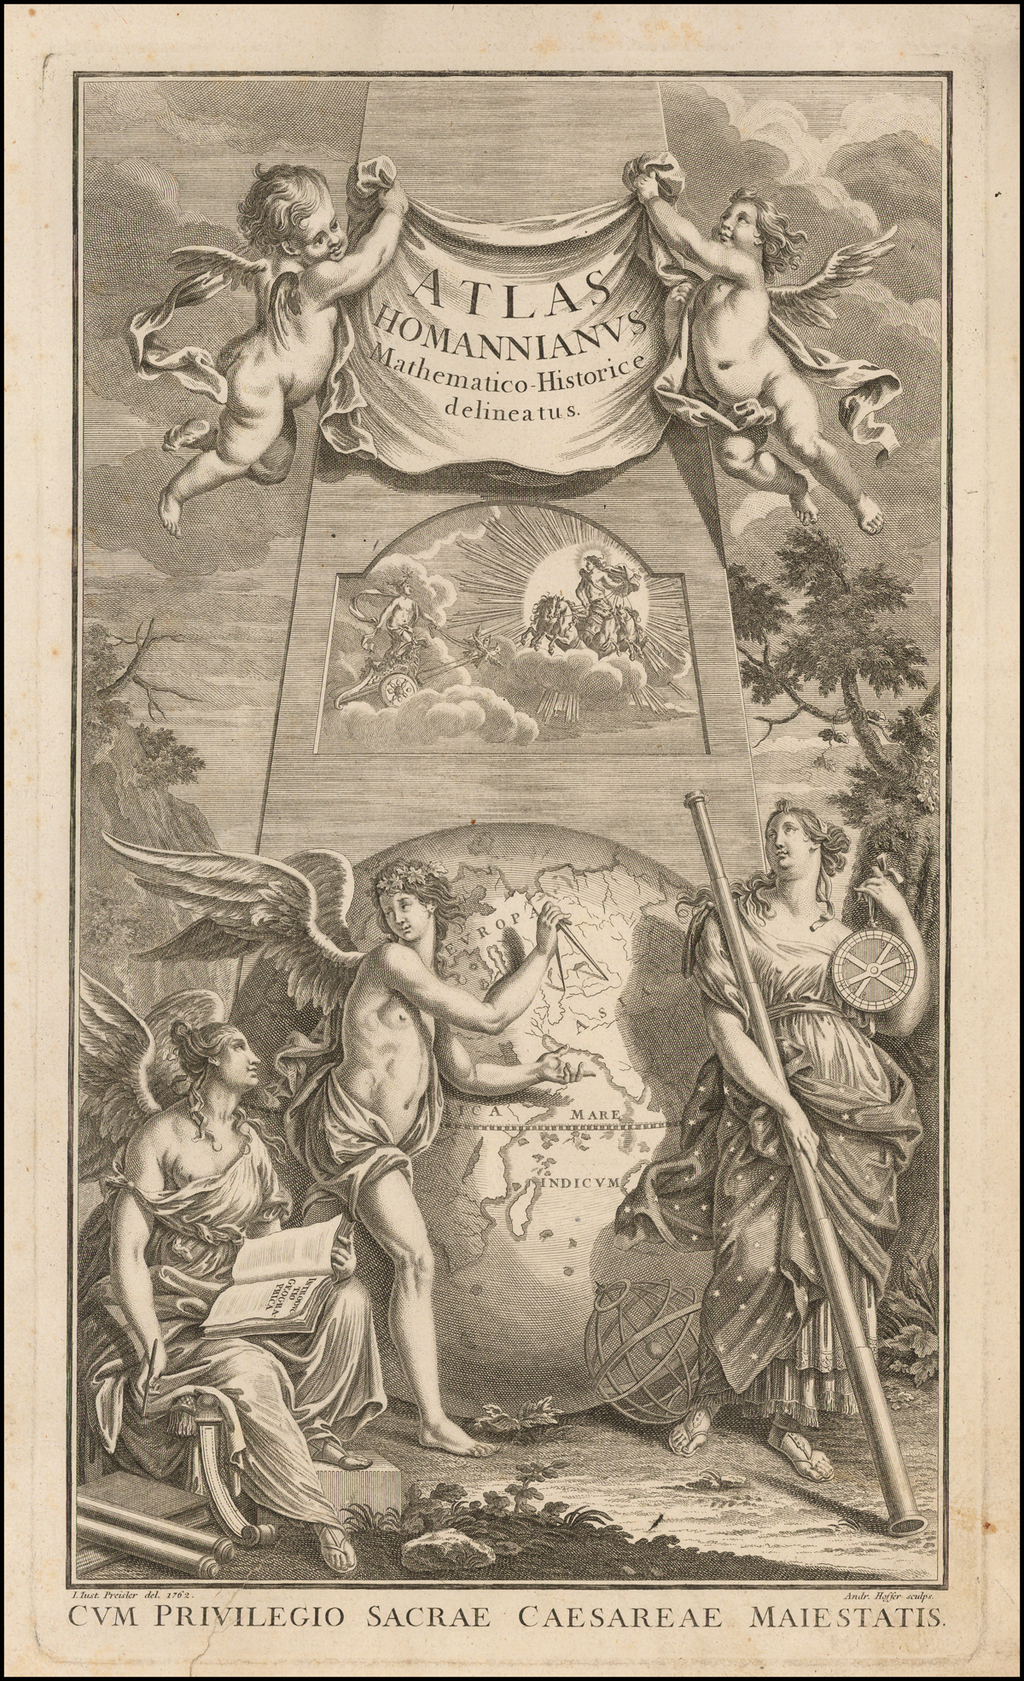 [Title Page] Atlas Homannianus Mathematico-Historice delineatus . . . 1762 By Homann Heirs